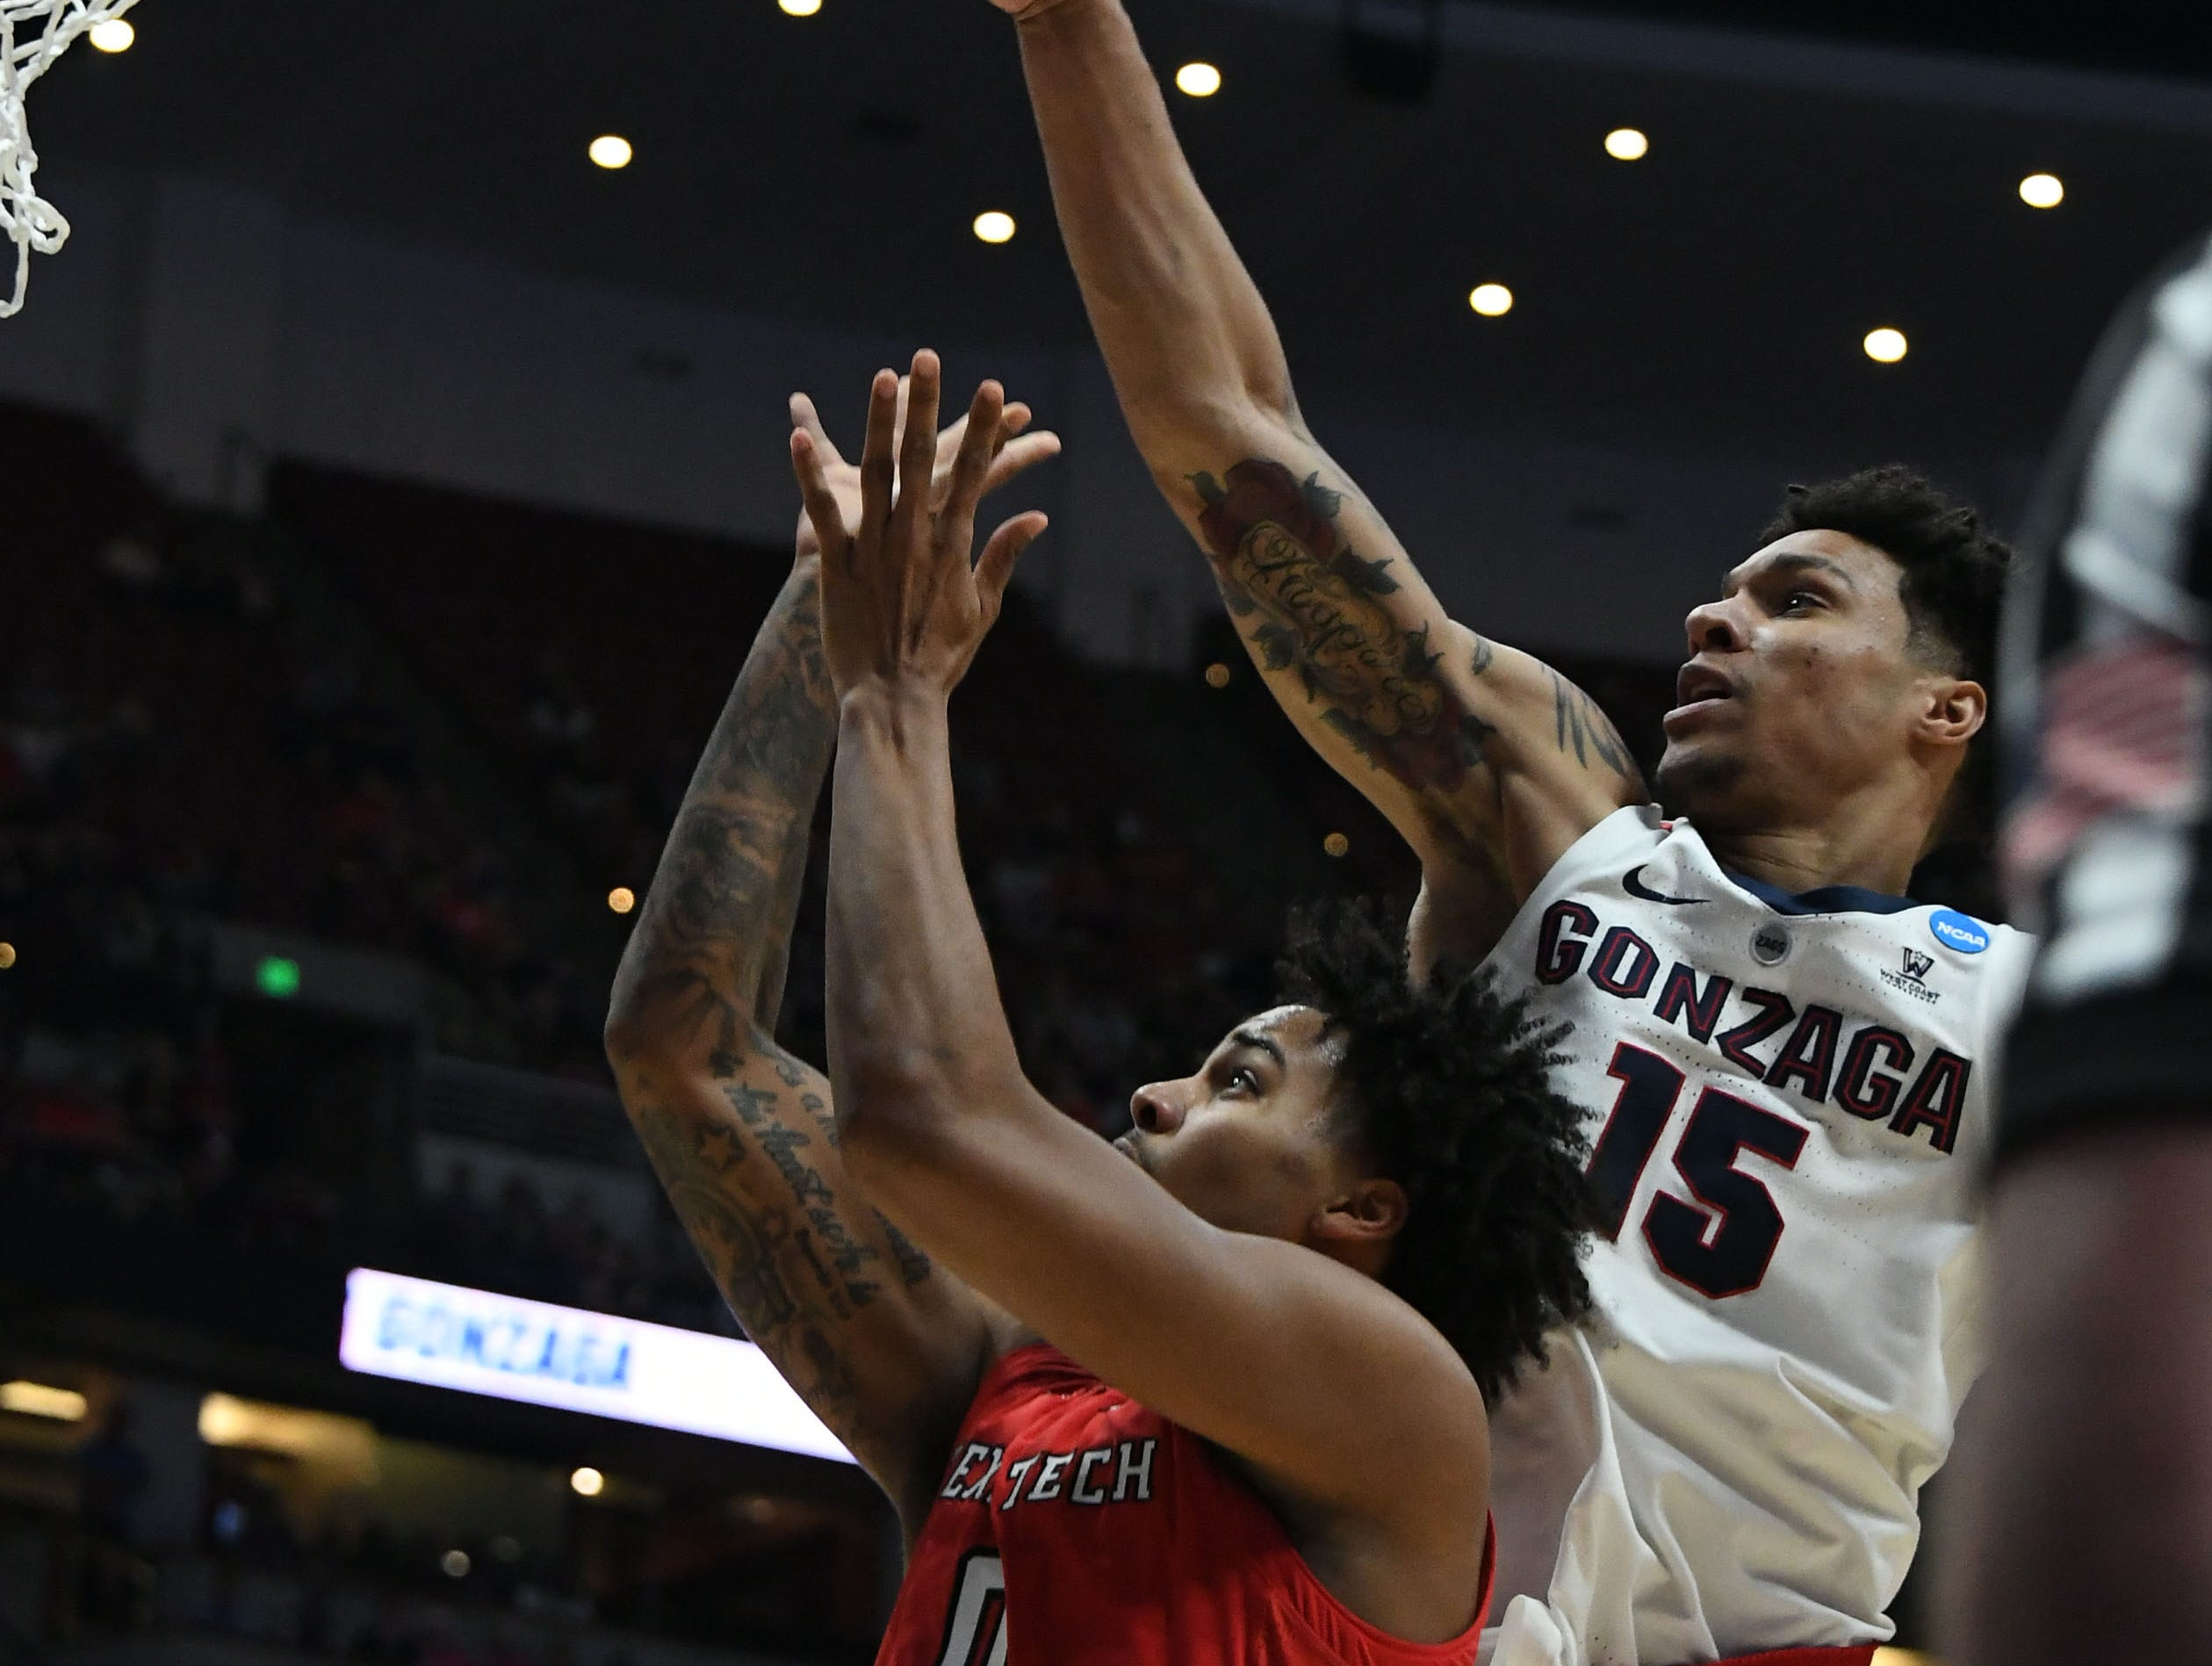 March 30, 2019; Anaheim, CA, USA; Gonzaga Bulldogs forward Brandon Clarke (15) blocks a shot against Texas Tech Red Raiders guard Kyler Edwards (0) during the second half in the championship game of the west regional of the 2019 NCAA Tournament at Honda Center. Mandatory Credit: Richard Mackson-USA TODAY Sports